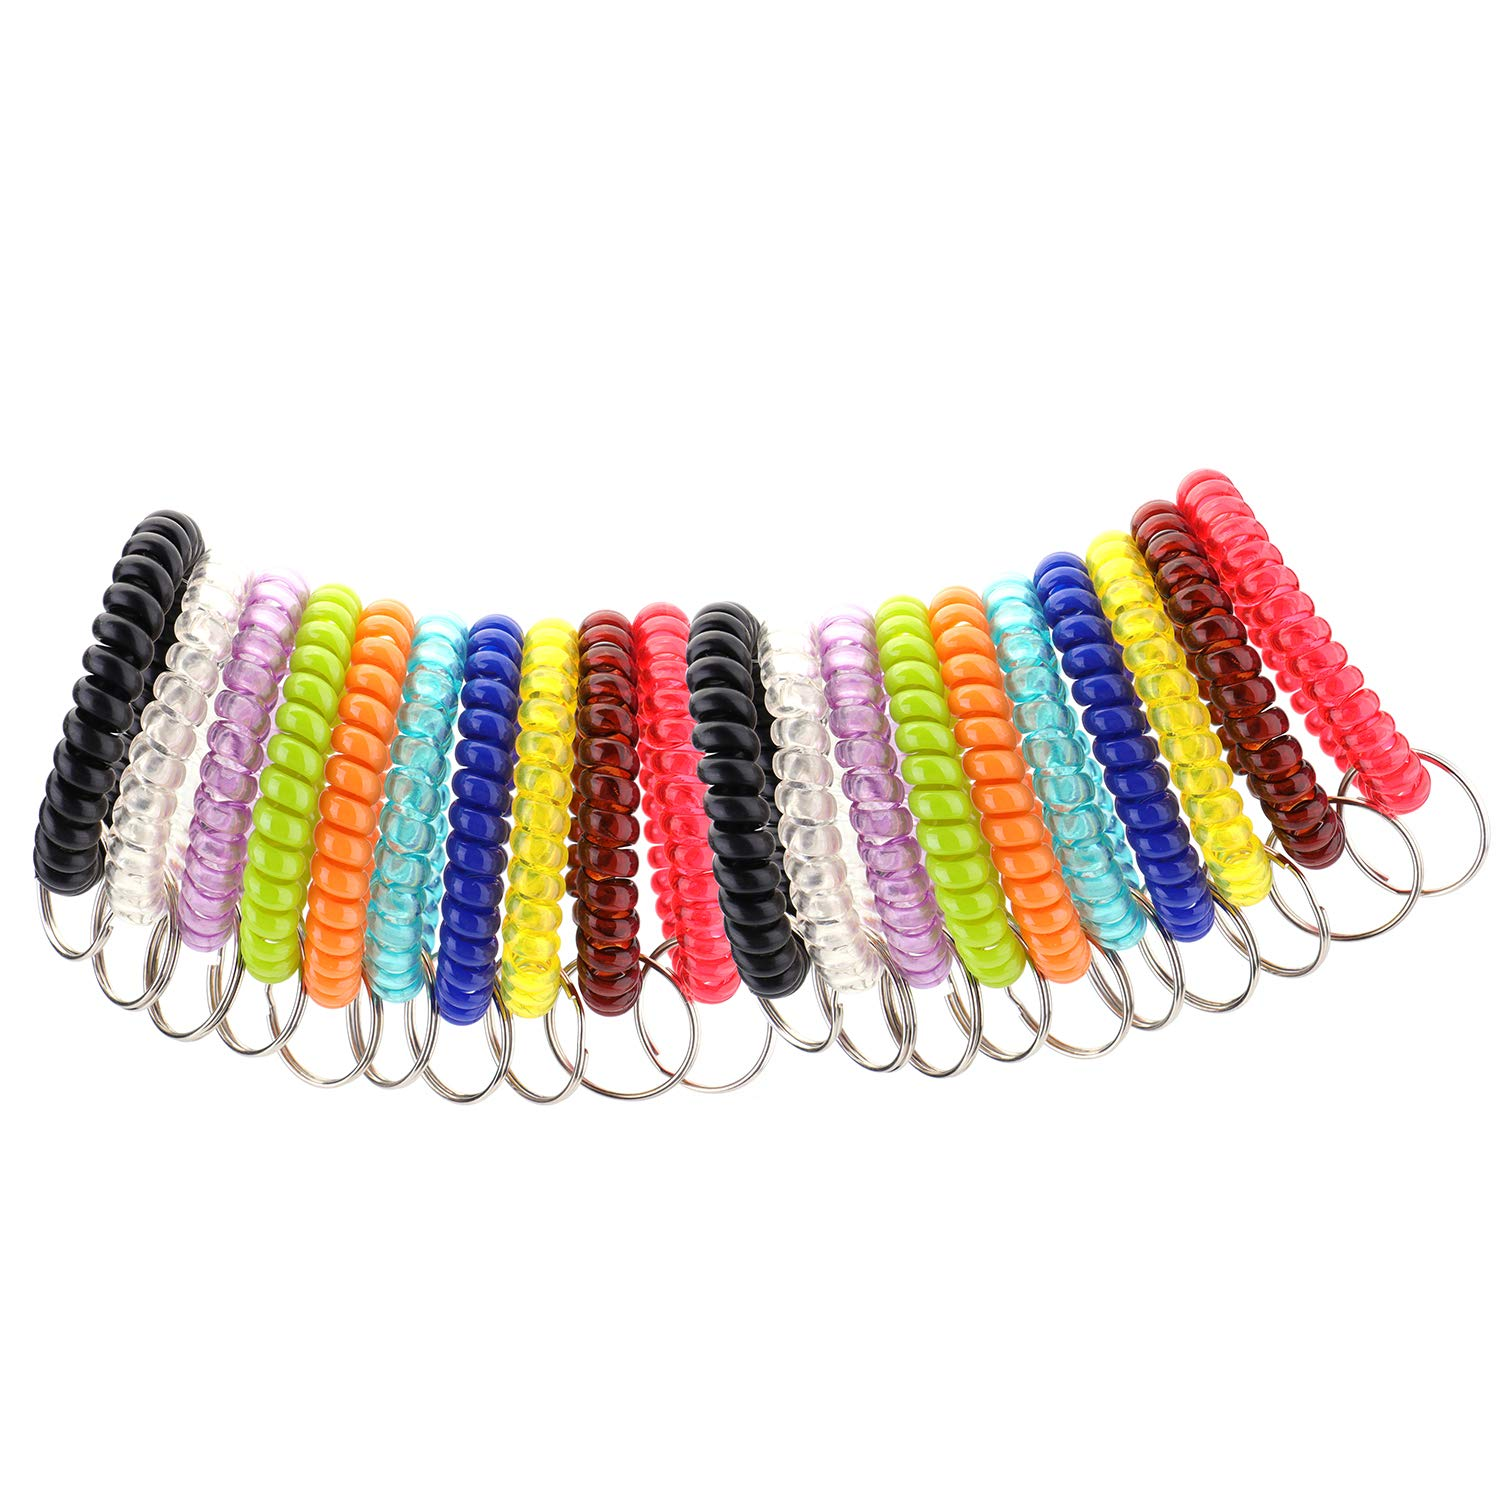 Fasmov 20 Pcs Mix-Colour Plastic Stretchable Spring Coil Wrist Band Key Ring Chain for Office, Shopping Mall, Sauna and Outdoor Activities